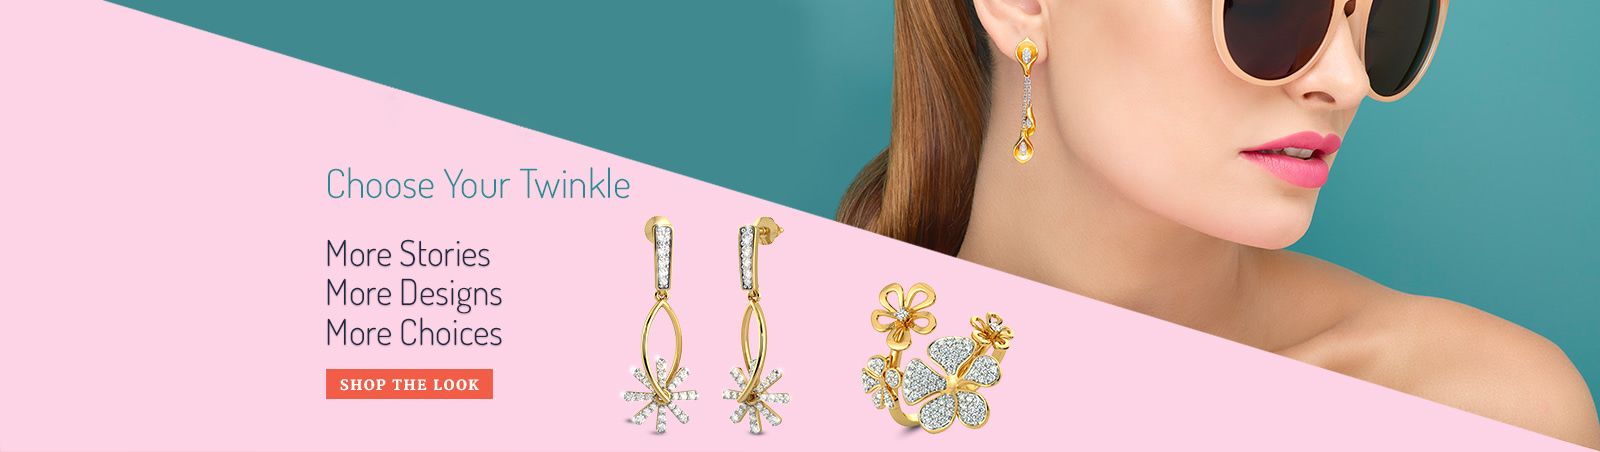 Choose Your Twinkle